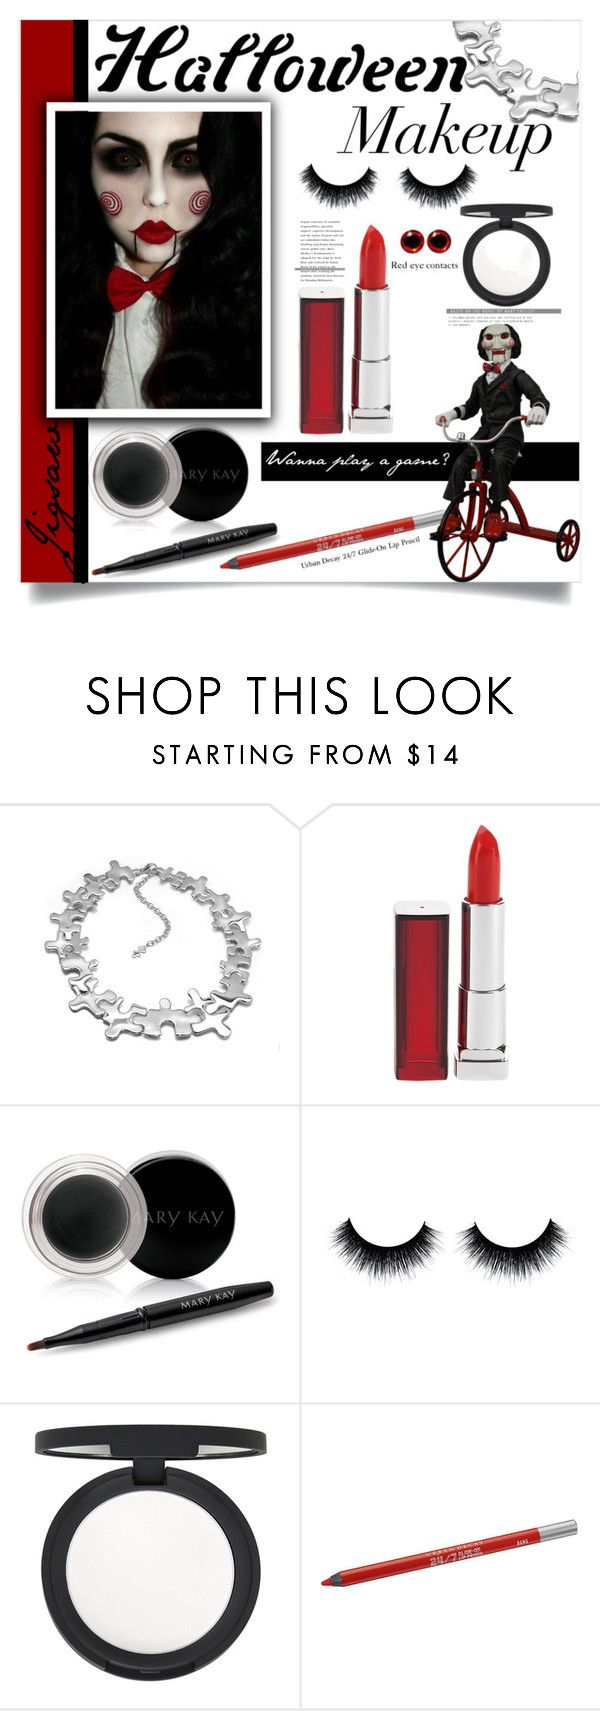 """""""Halloween makeup: Jigsaw 10/11/15"""" by ambacasa ❤ liked on Polyvore featuring LucyQ Designs, Maybelline, Mary Kay, Topshop, Urban Decay, women's clothing, women's fashion, women, female and woman"""